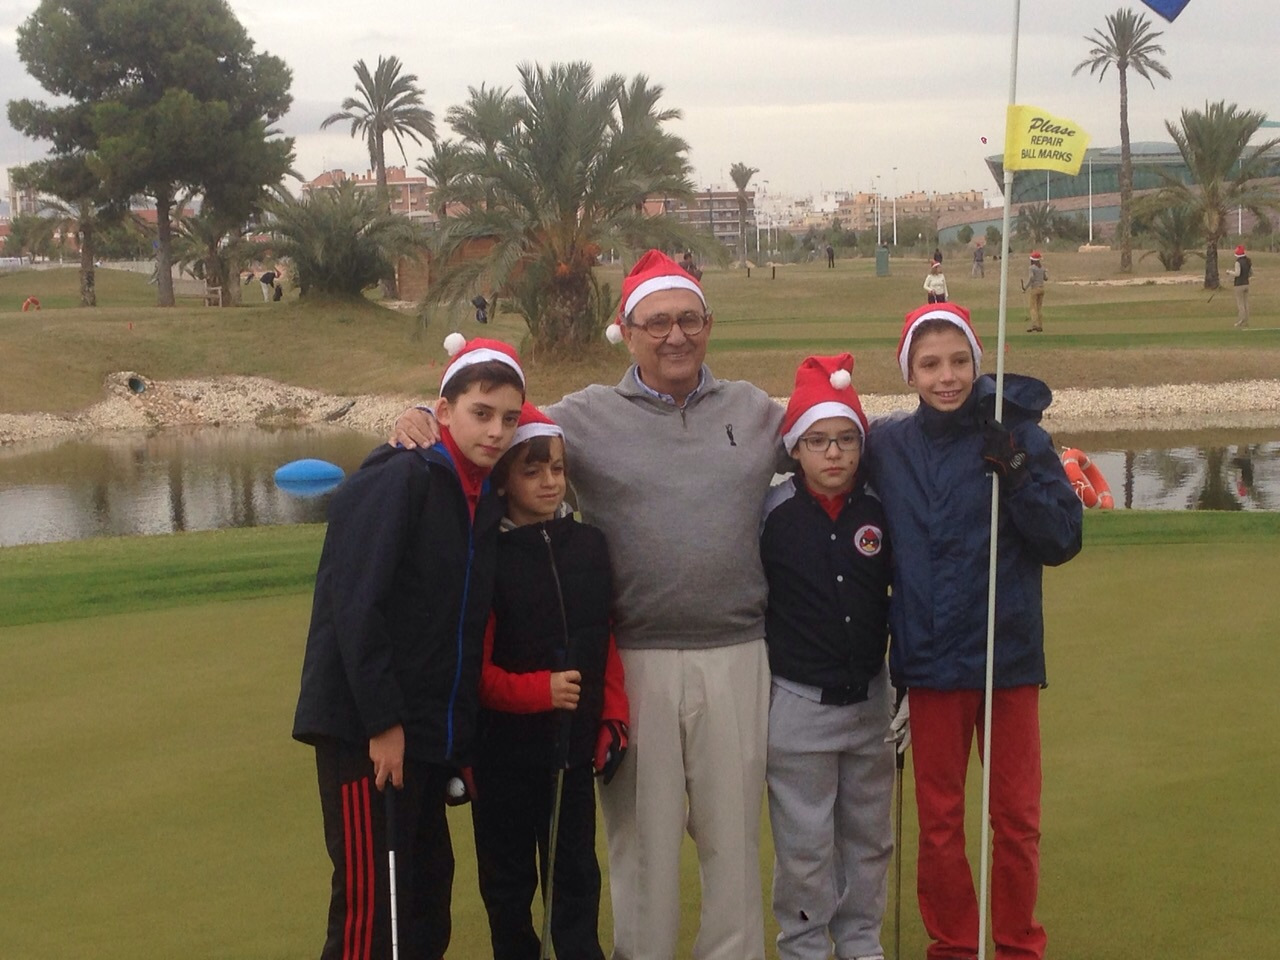 There is celebrated the FIRST TOURNAMENT OF NEW PLAYERS in the Escuela de Golf de Elche